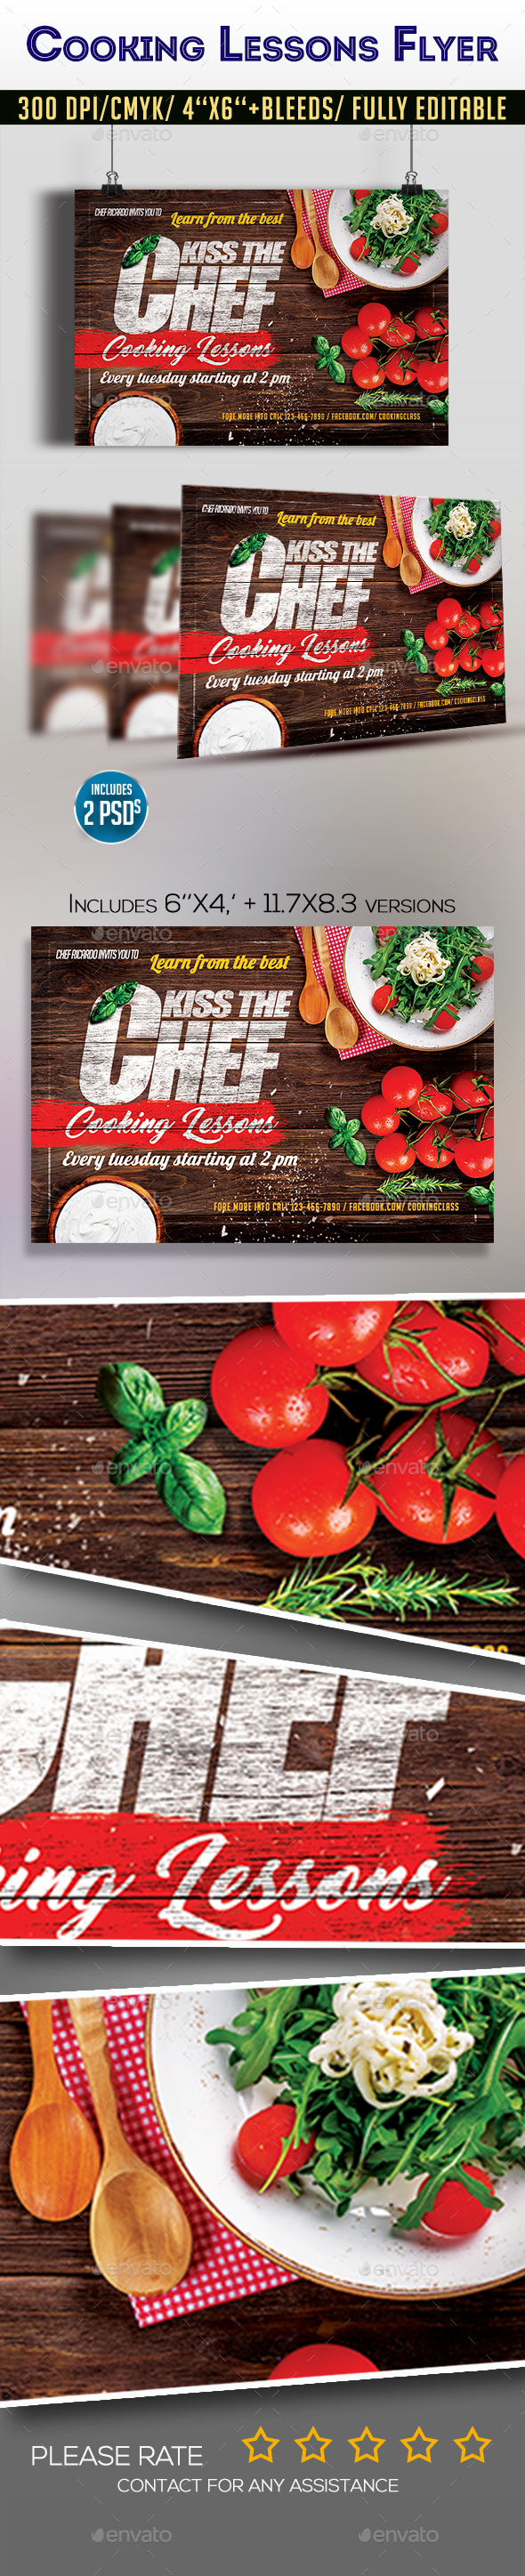 Cooking Lessons Flyer - Restaurant Flyers